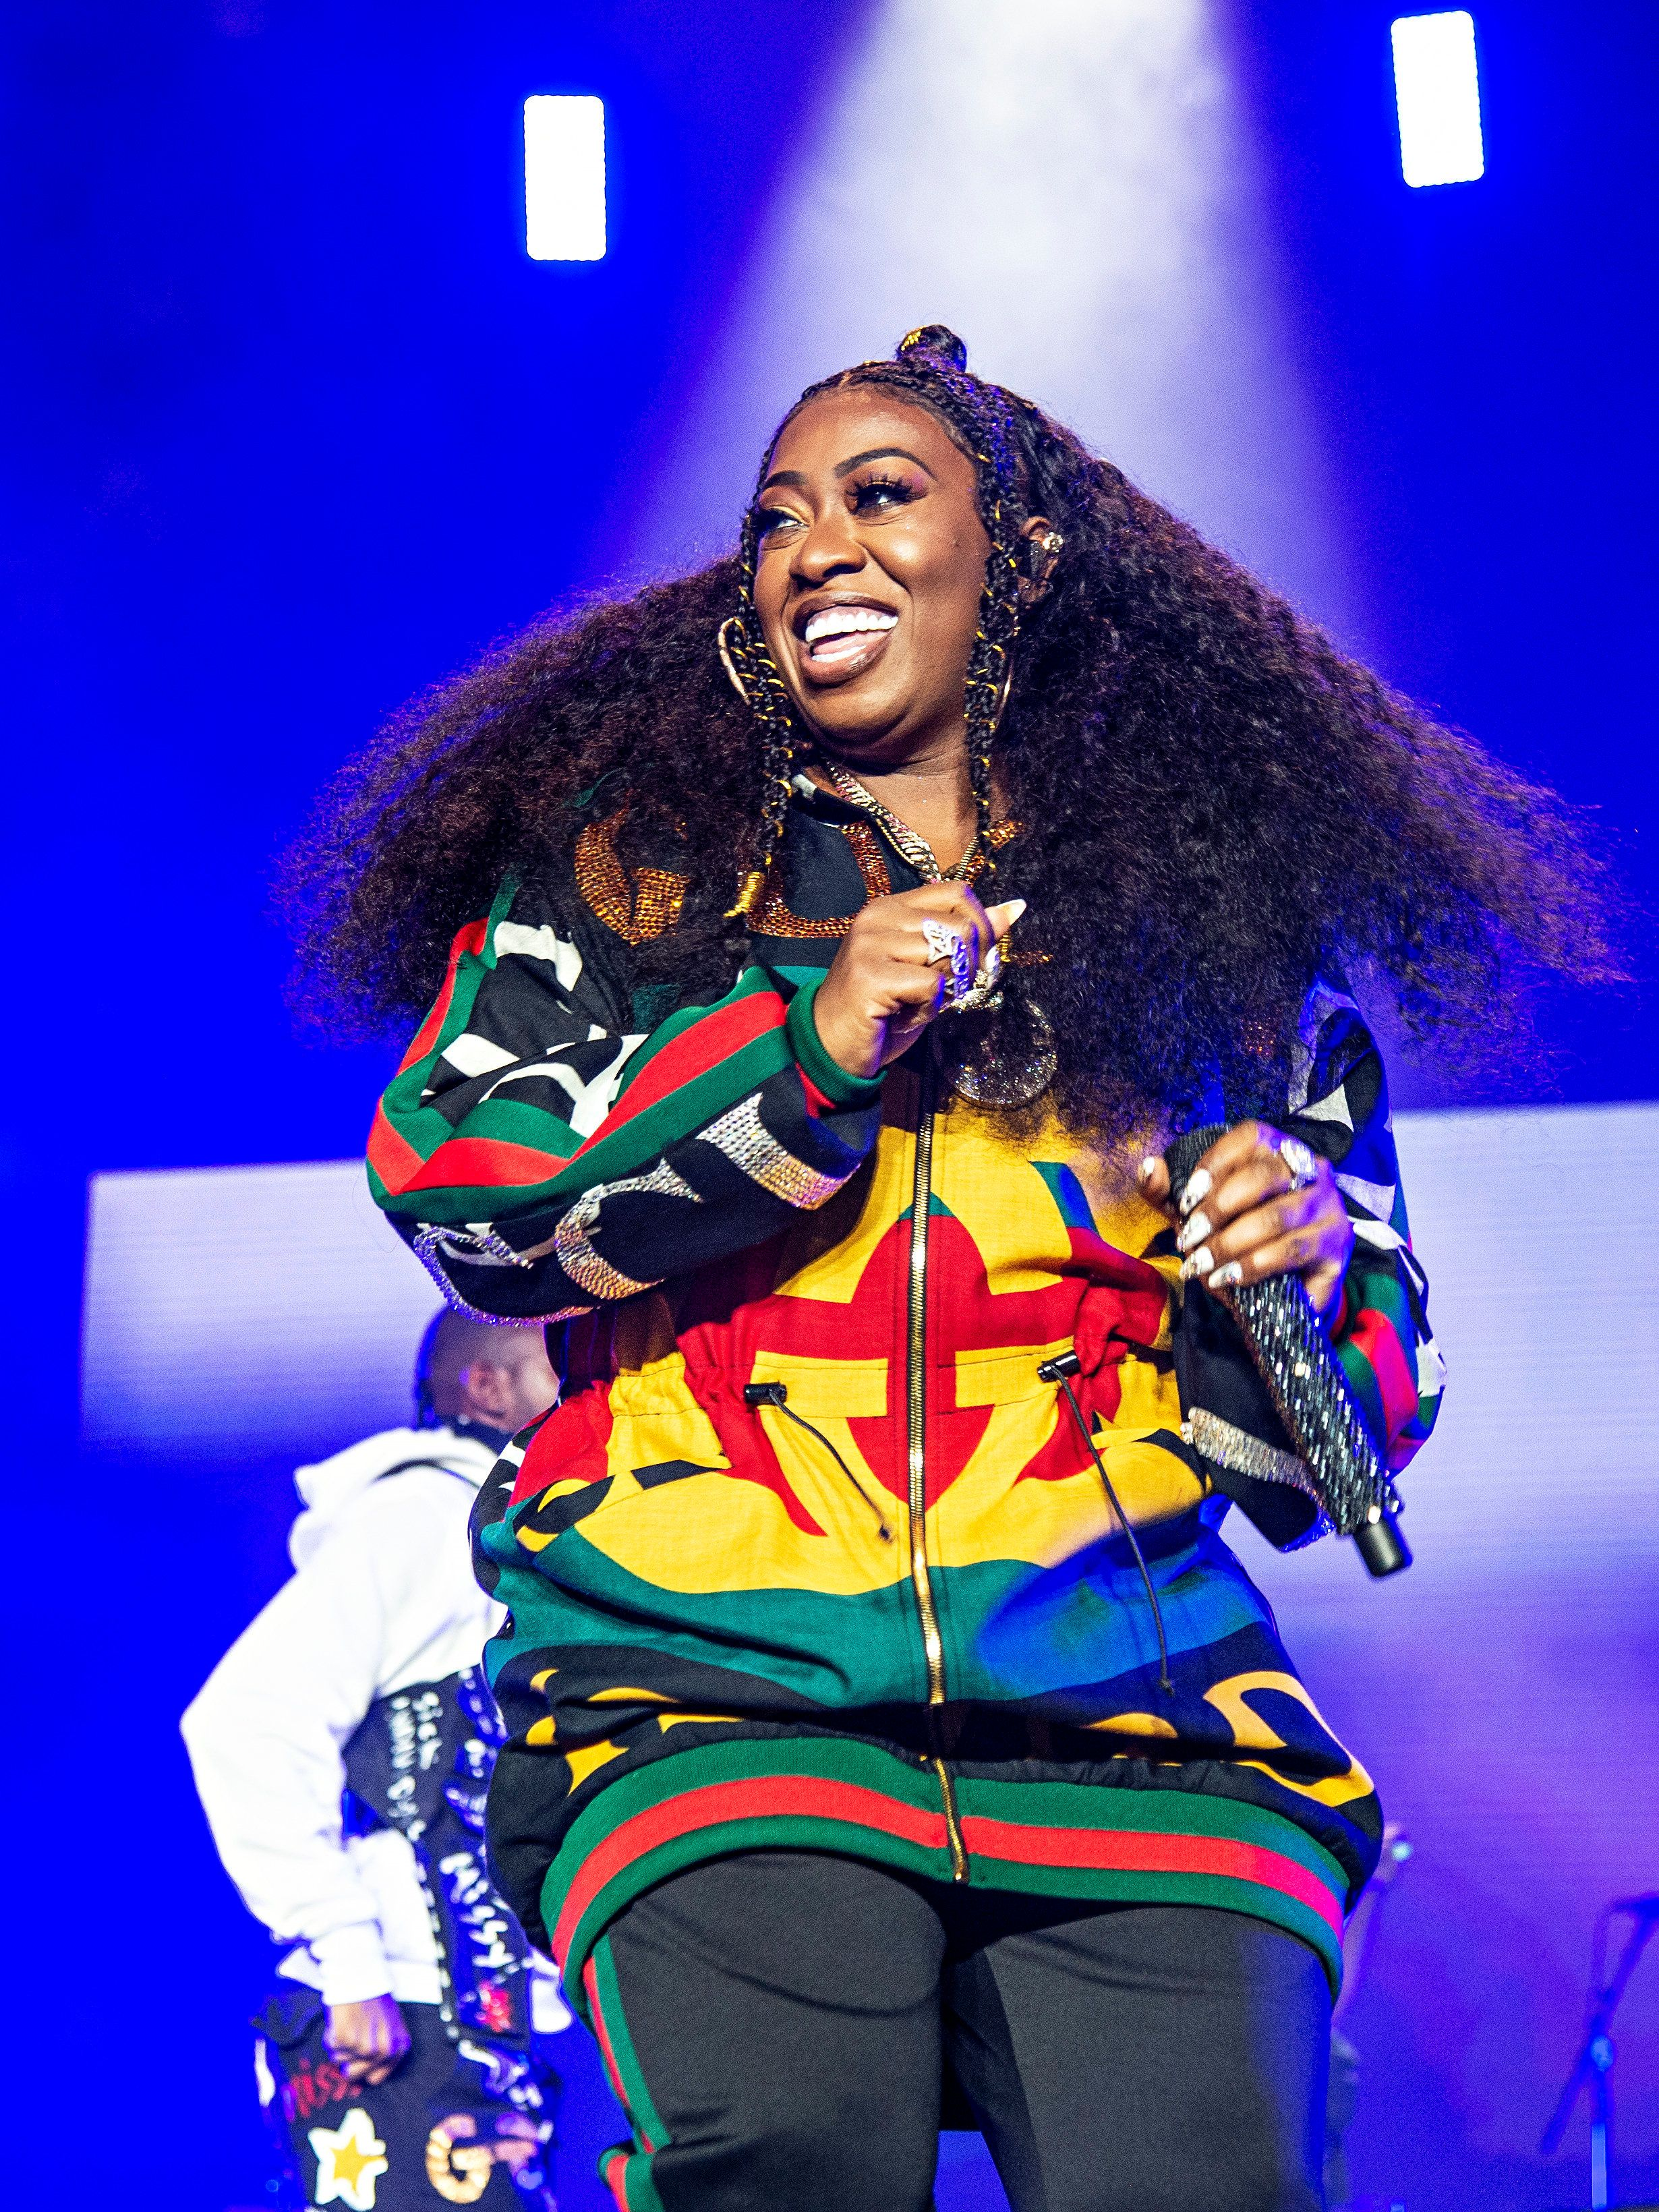 Missy Elliott performs at the 2018 Essence Festival at the Mercedes-Benz Superdome on Saturday, July 7, 2018, in New Orleans. (Photo by Amy Harris/Invision/AP)